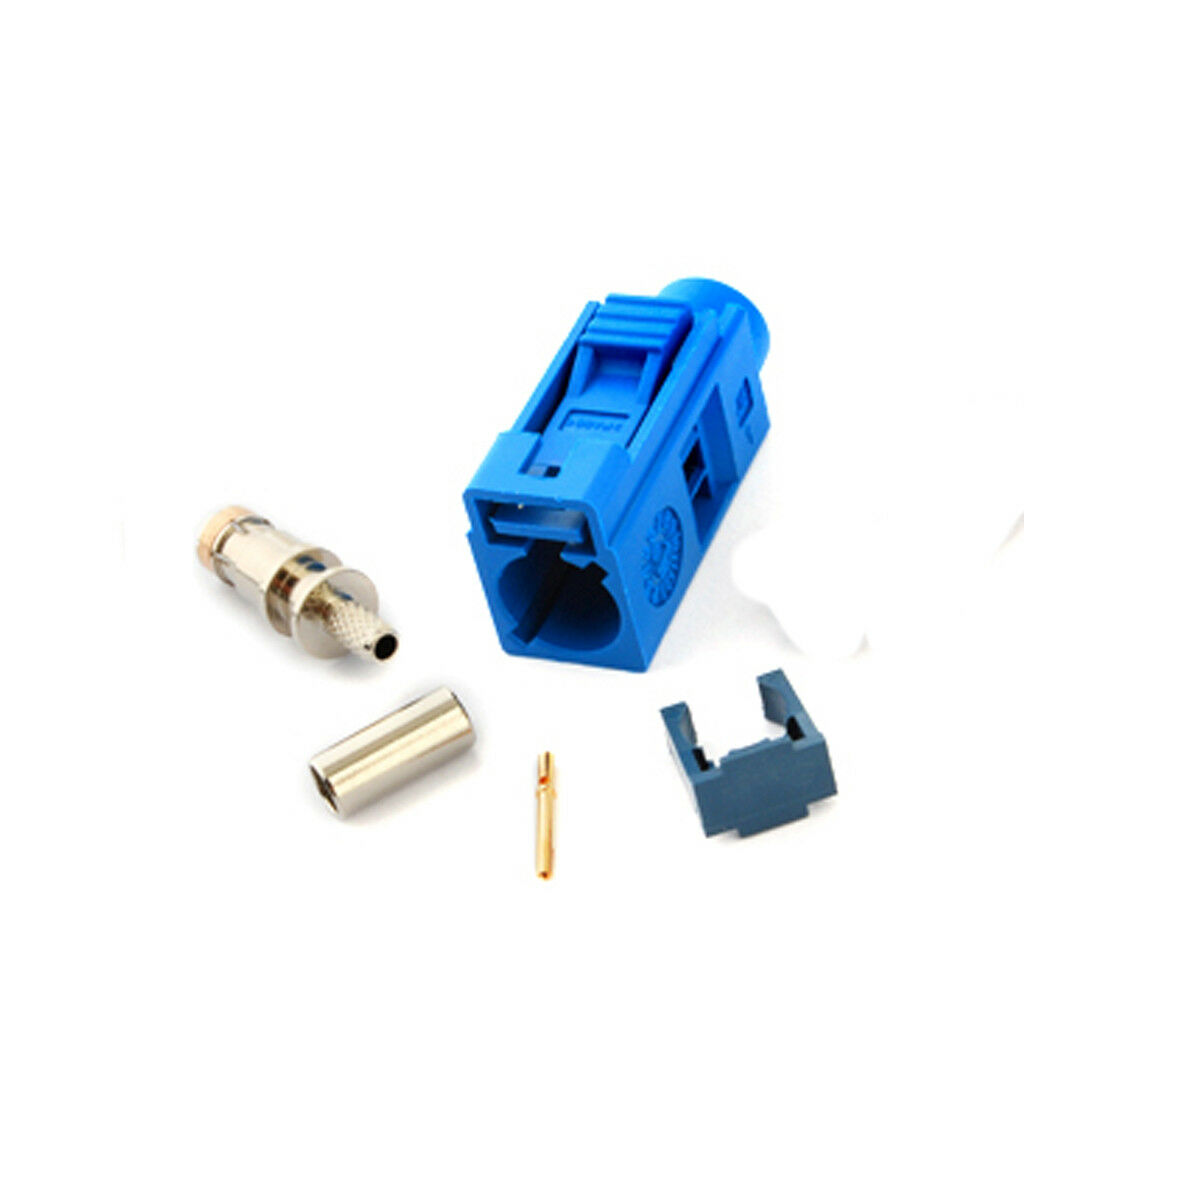 YiNiTone Fakra C Blue/5005 Female Jack Connector Crimp For Cable RG316 For GPS Antenna Telematics&navigation